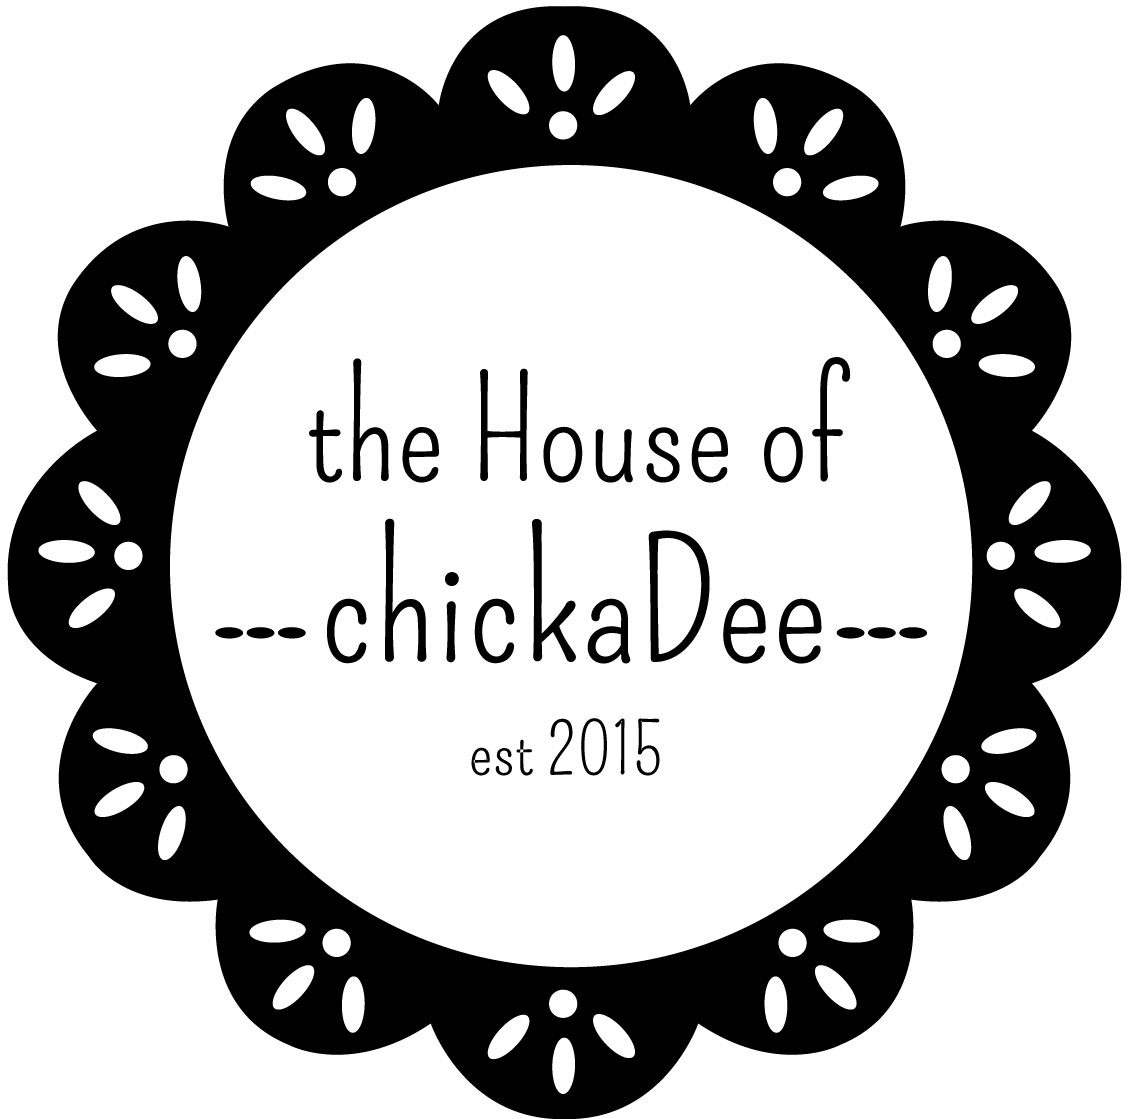 the House of chickaDee